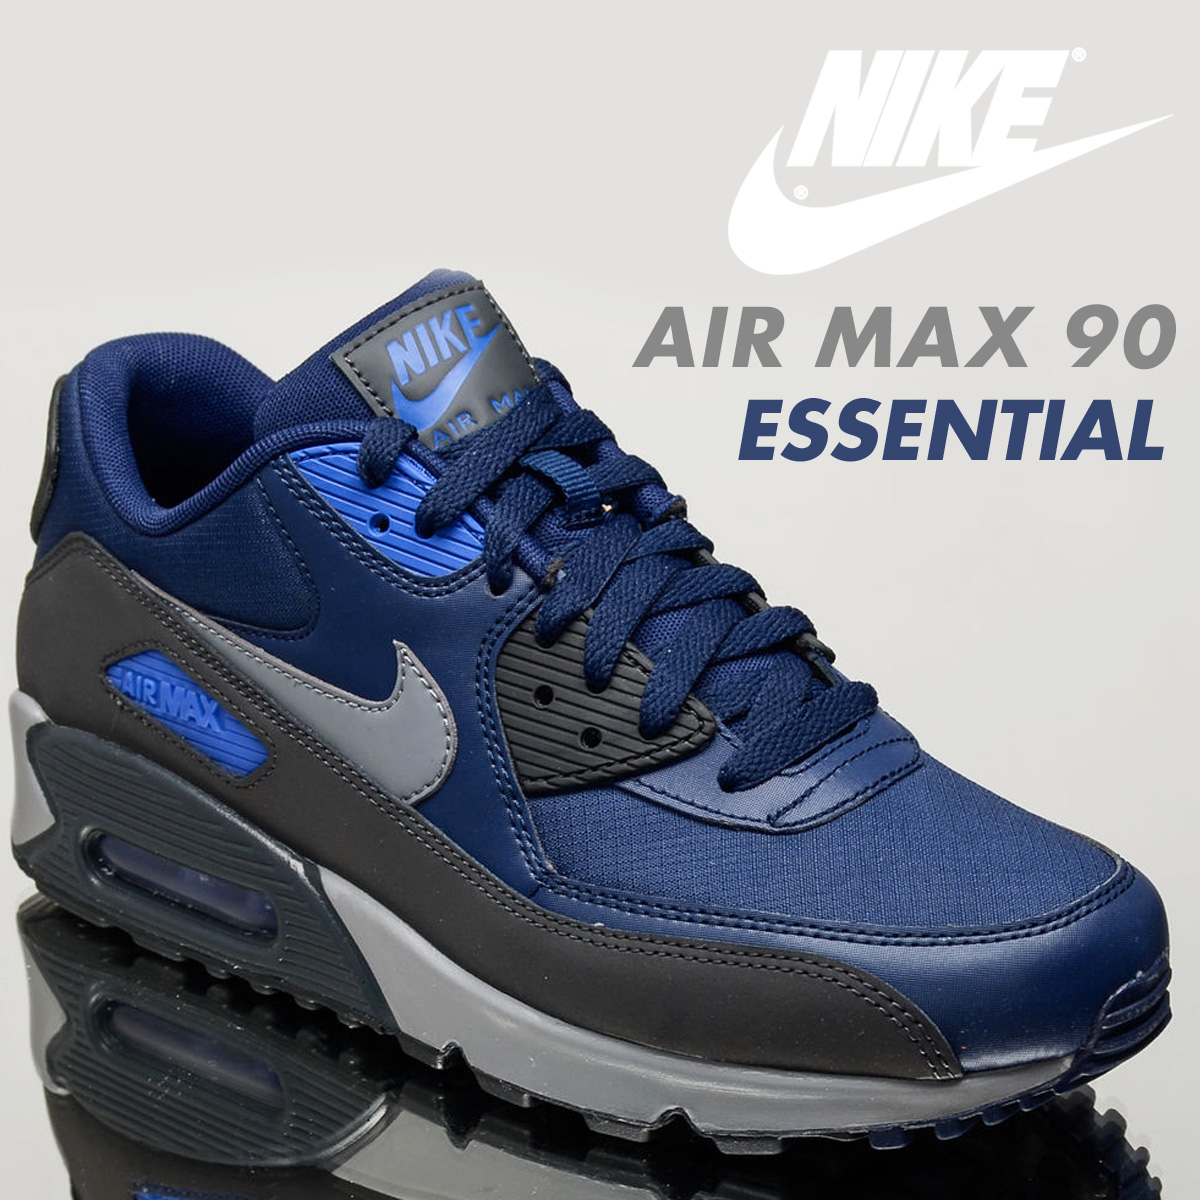 quality design ecdc6 e81a8 Nike NIKE Air Max 90 essential sneakers AIR MAX 90 ESSENTIAL 537,384-422  men s shoes navy  load planned Shinnyu load in reservation product 8 30  containing